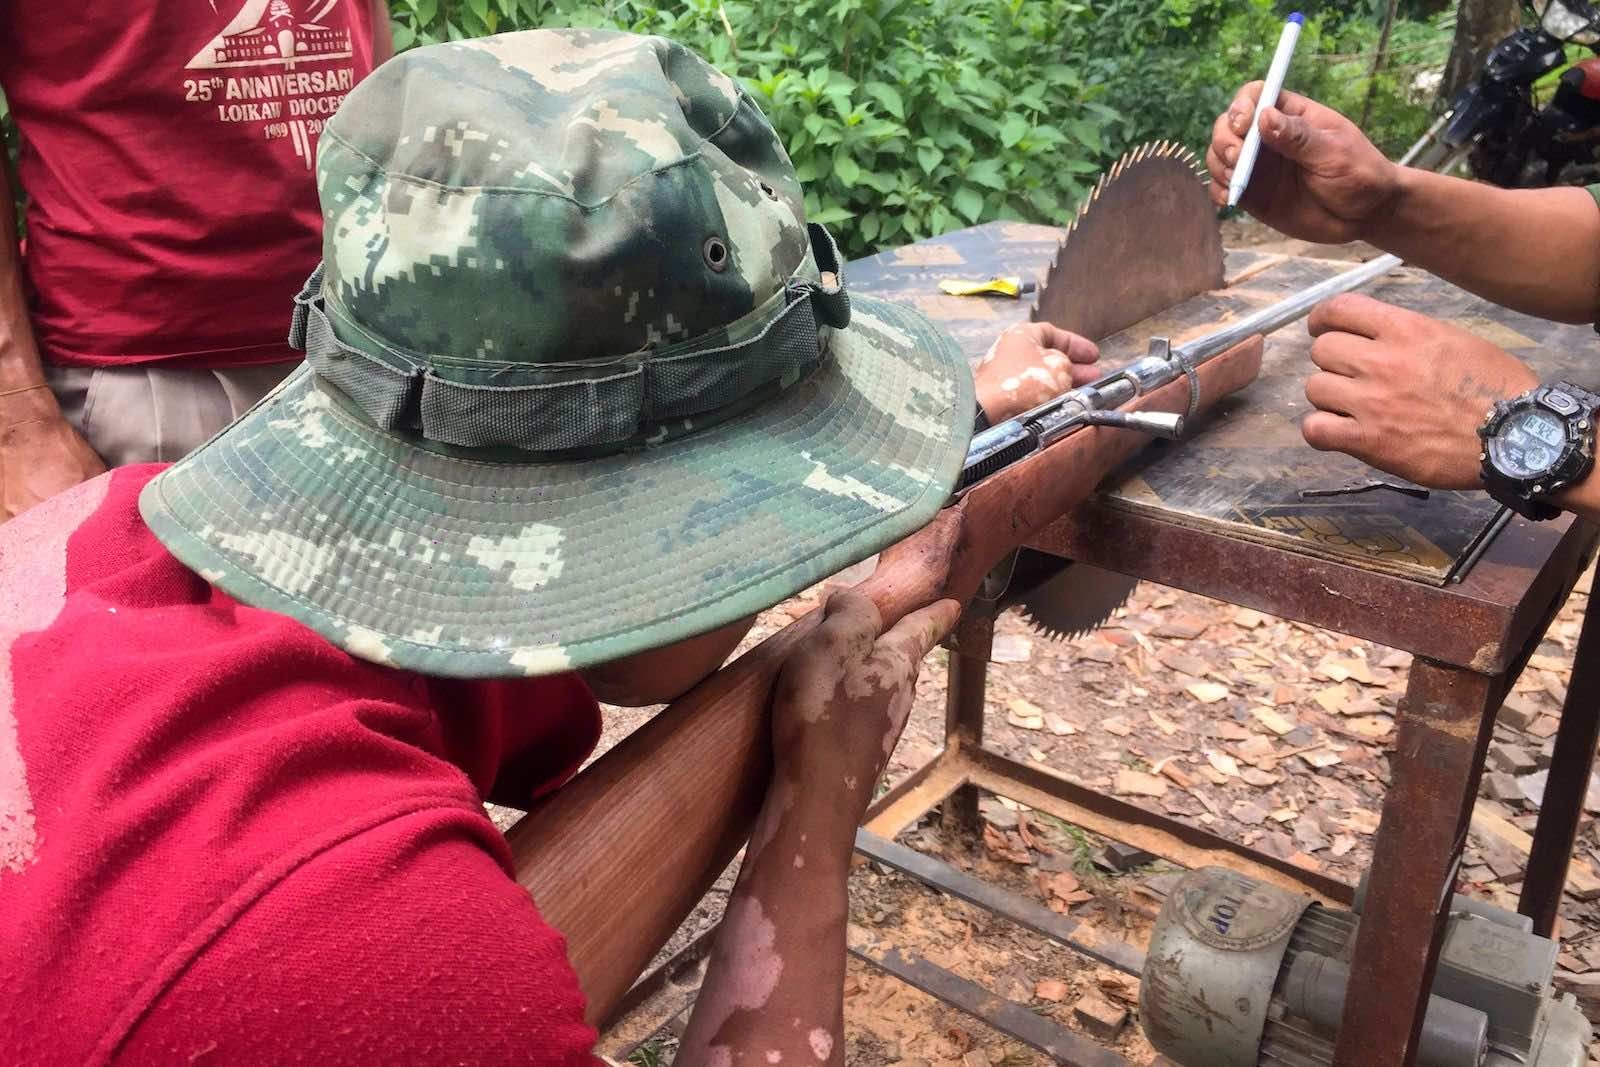 Handmade guns to be used in fighting against security forces, near Demoso, Kayah state, Myanamar, 4 June 2021 (STR/AFP via Getty Images)